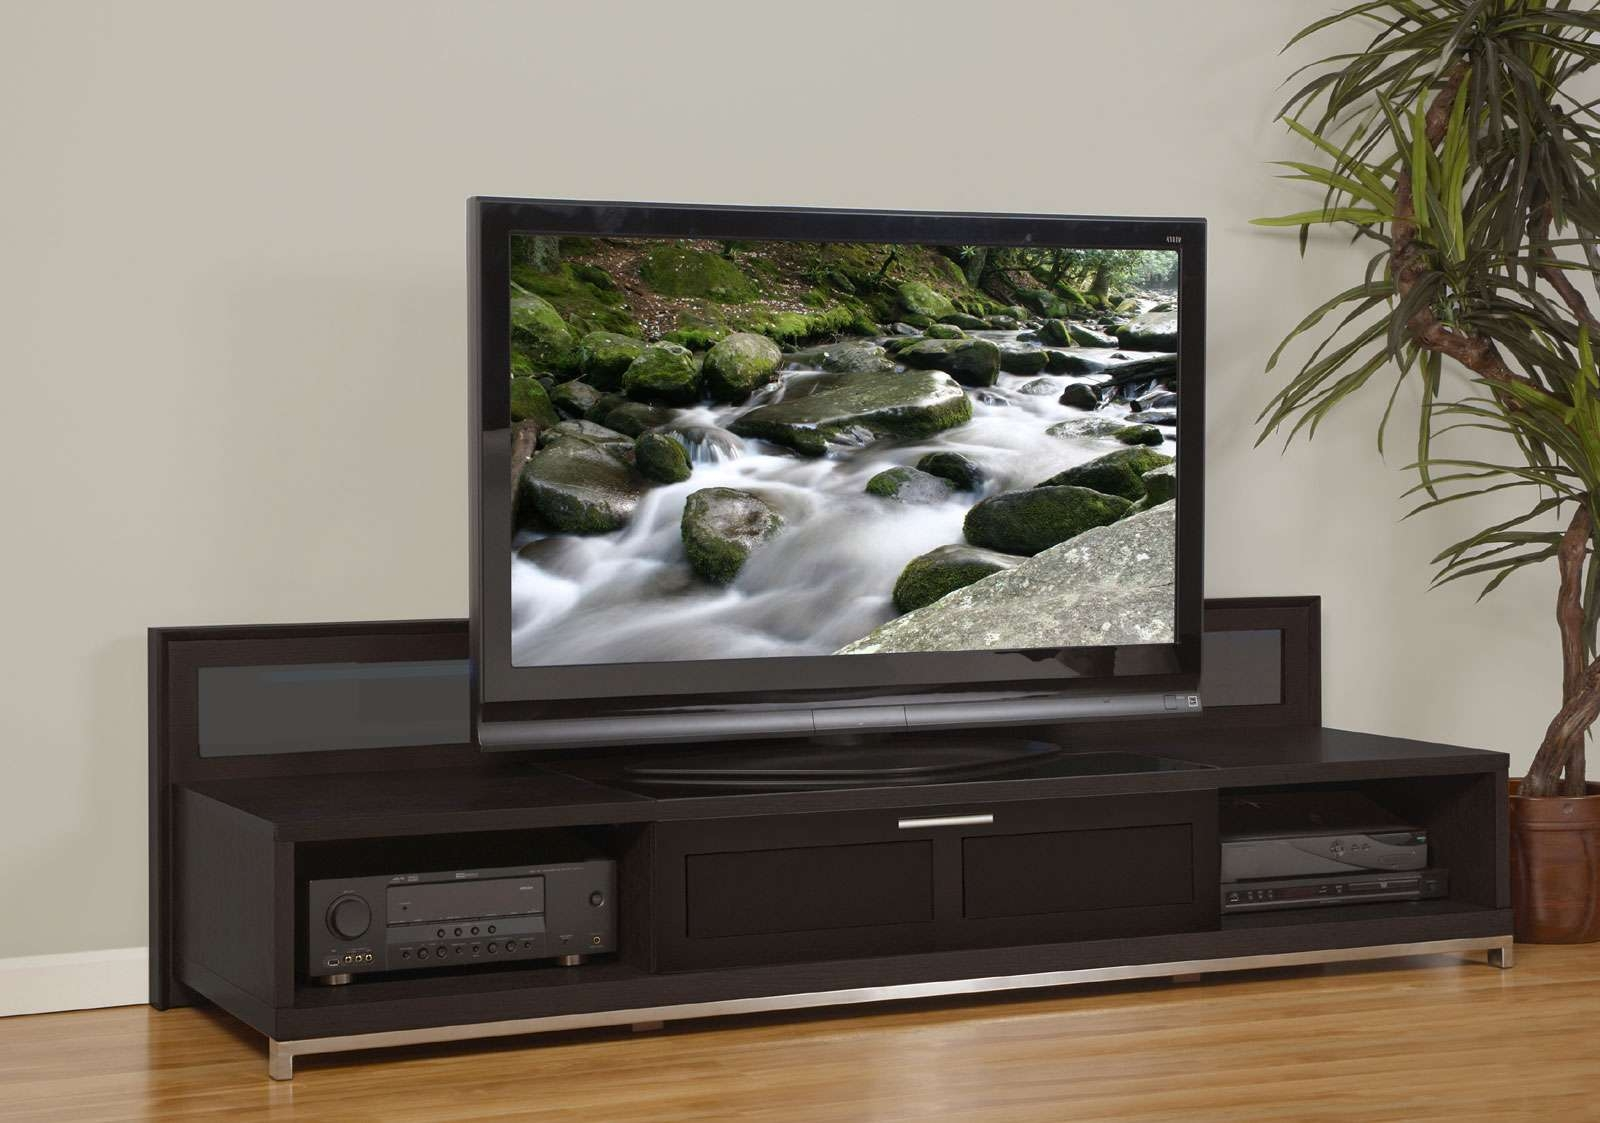 Tv Stands With Flat Panel Mounts Corner Cabinet For Screens Pertaining To Contemporary Tv Stands For Flat Screens (View 8 of 20)